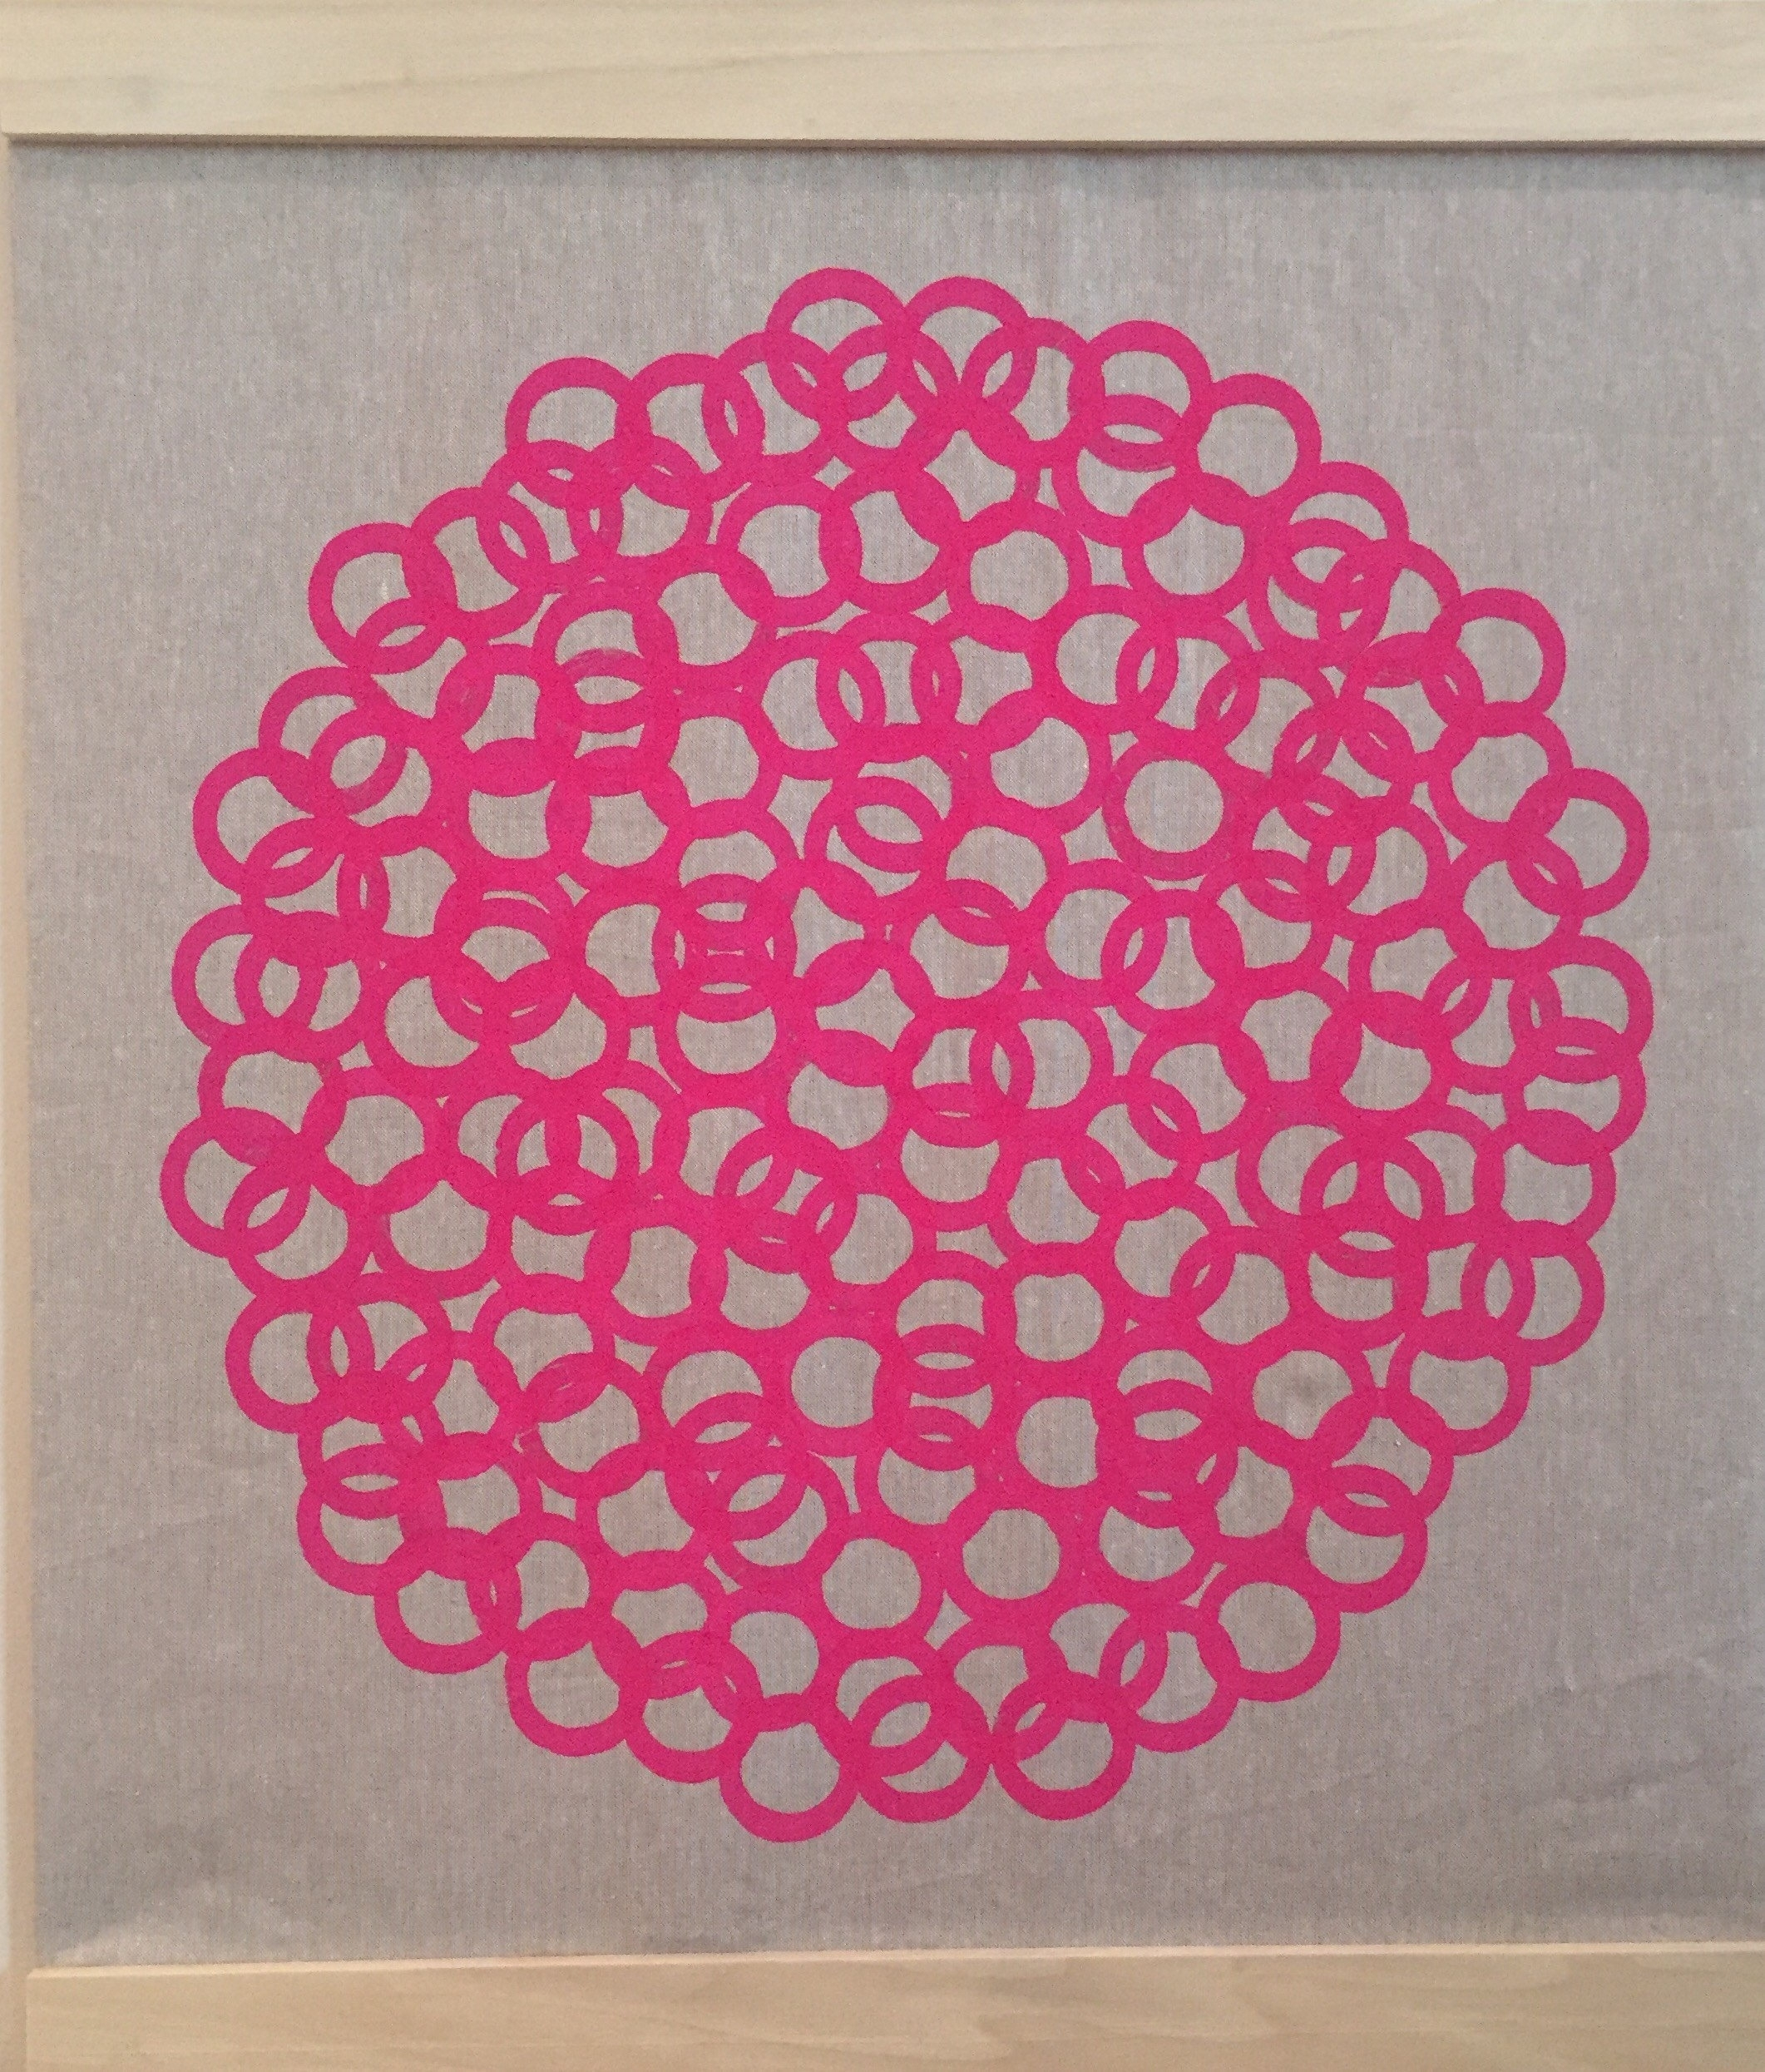 Modern Retro Wall Art Handmade Contemporary Printed Fabric Wall Throughout Most Popular Fabric Circle Wall Art (View 9 of 15)